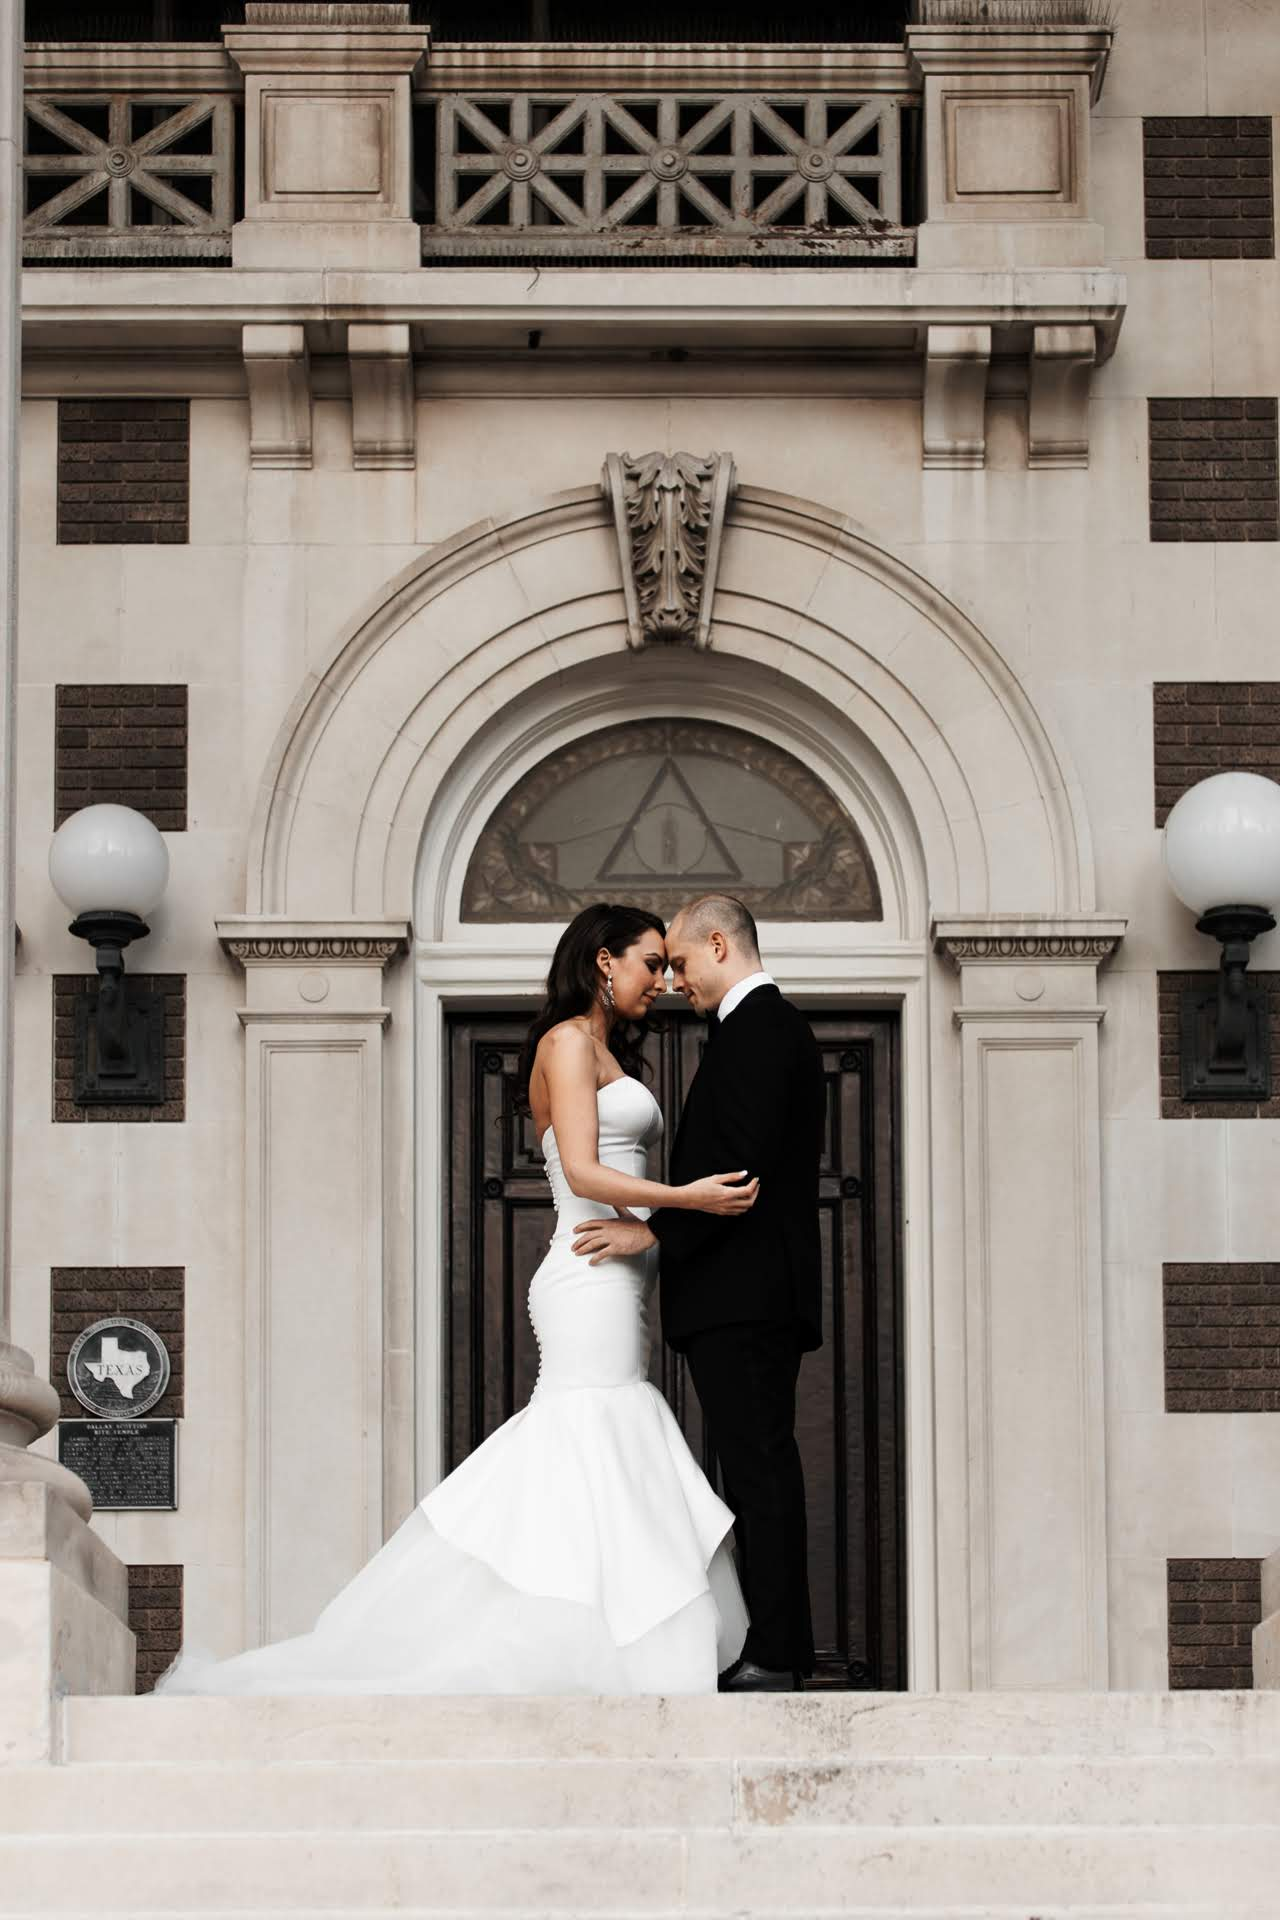 NEED TO DOWNSIZE YOUR WEDDING? HERE ARE 4 OPTIONS